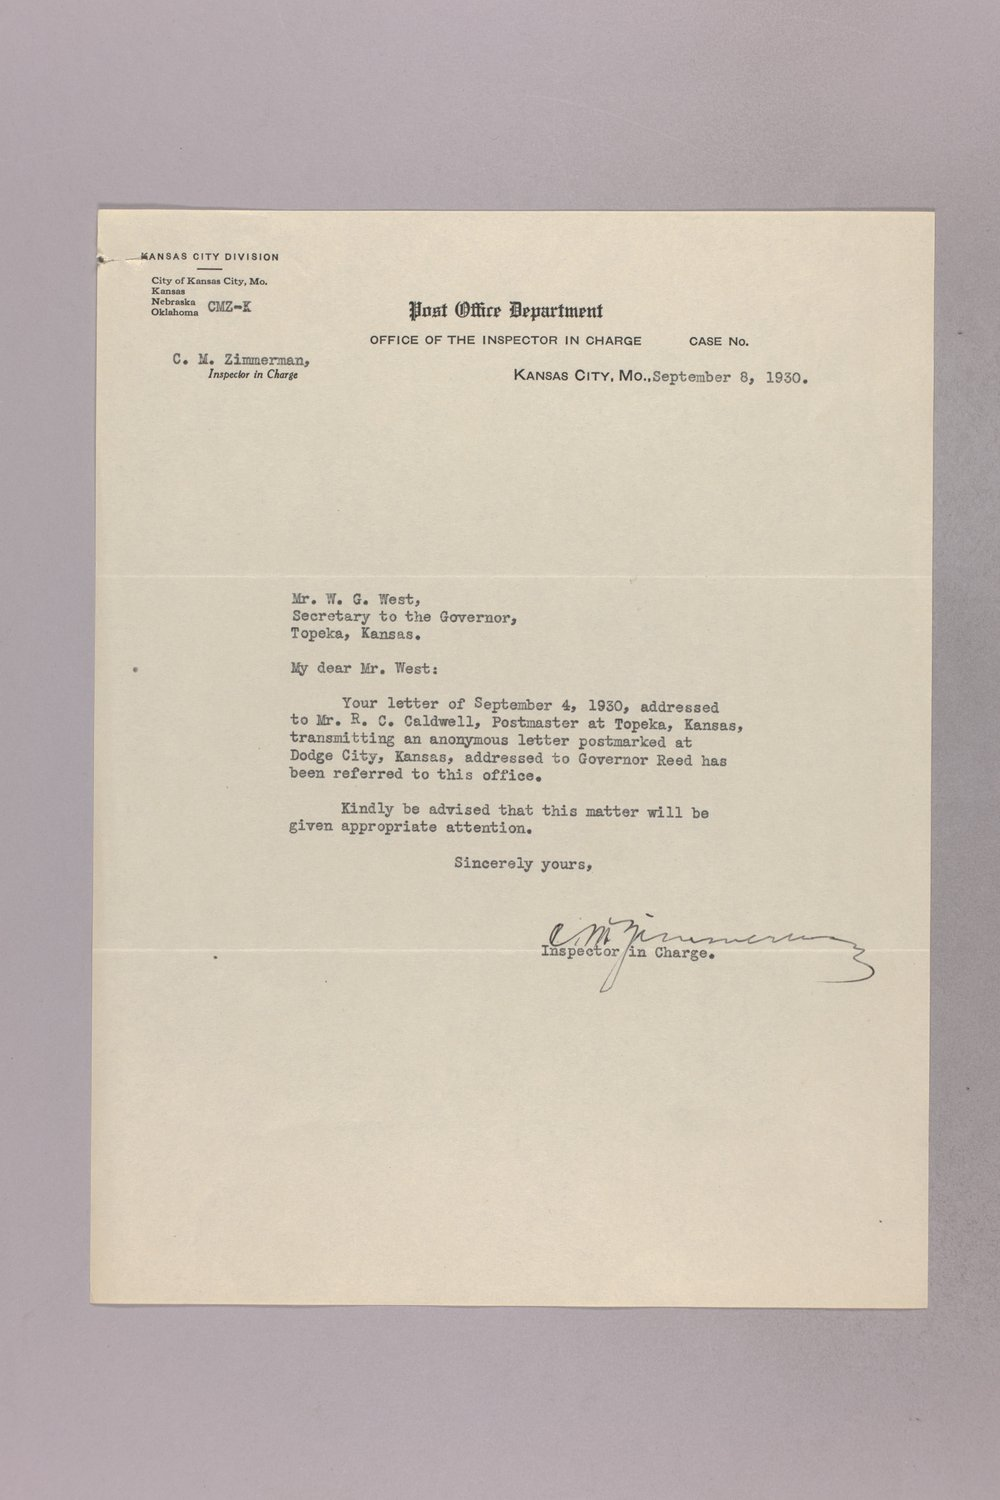 Governor Clyde M. Reed correspondence, United States Postal Service - 3